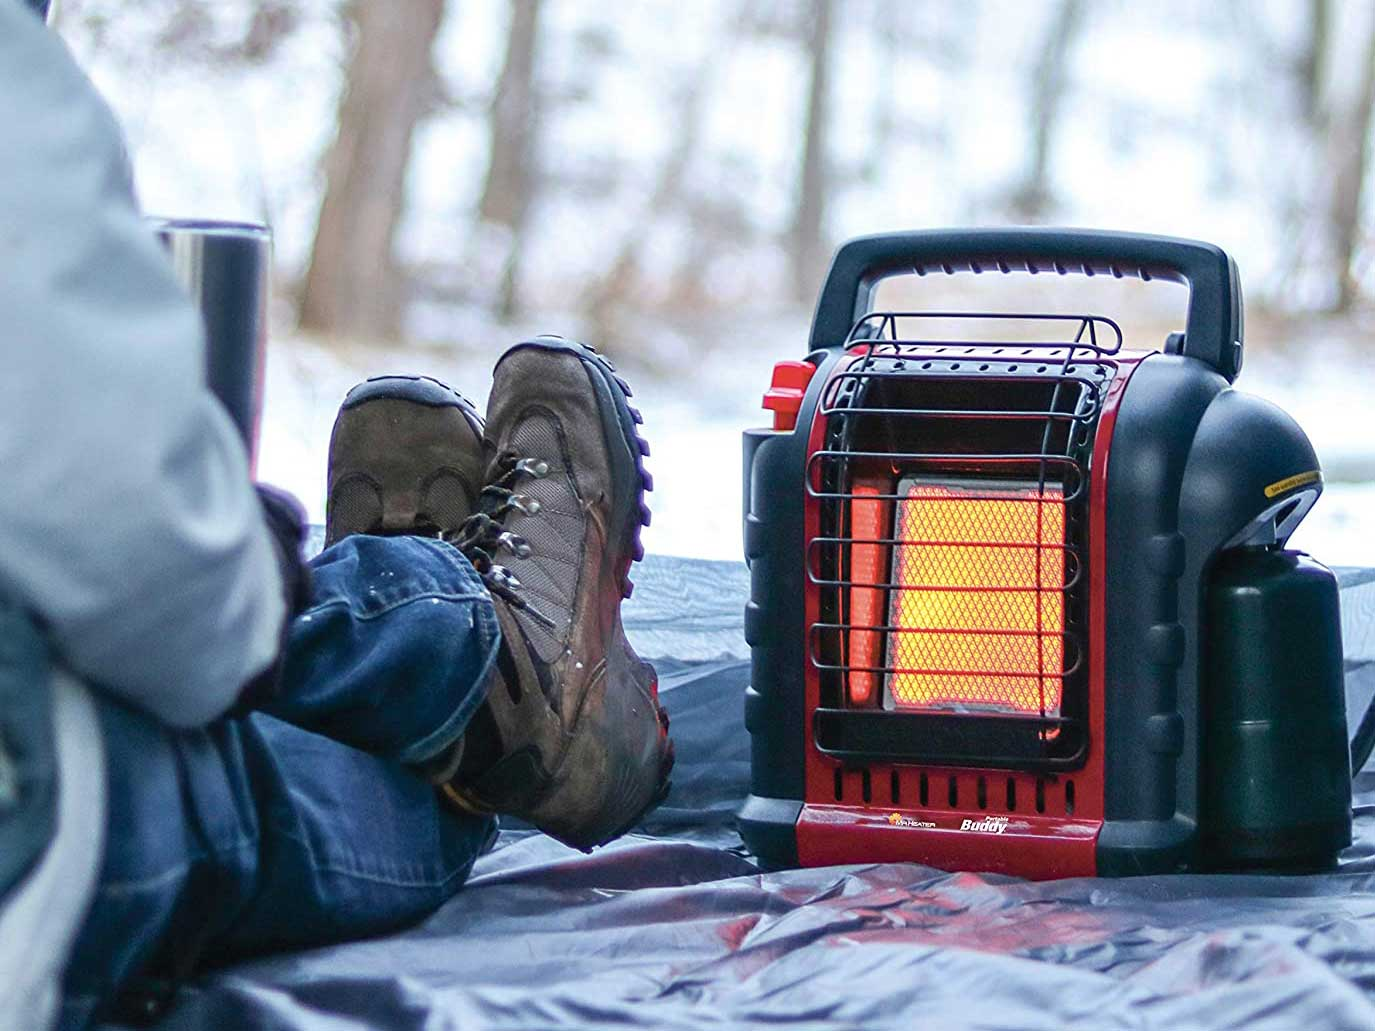 Man using personal heater outdoors in snow.